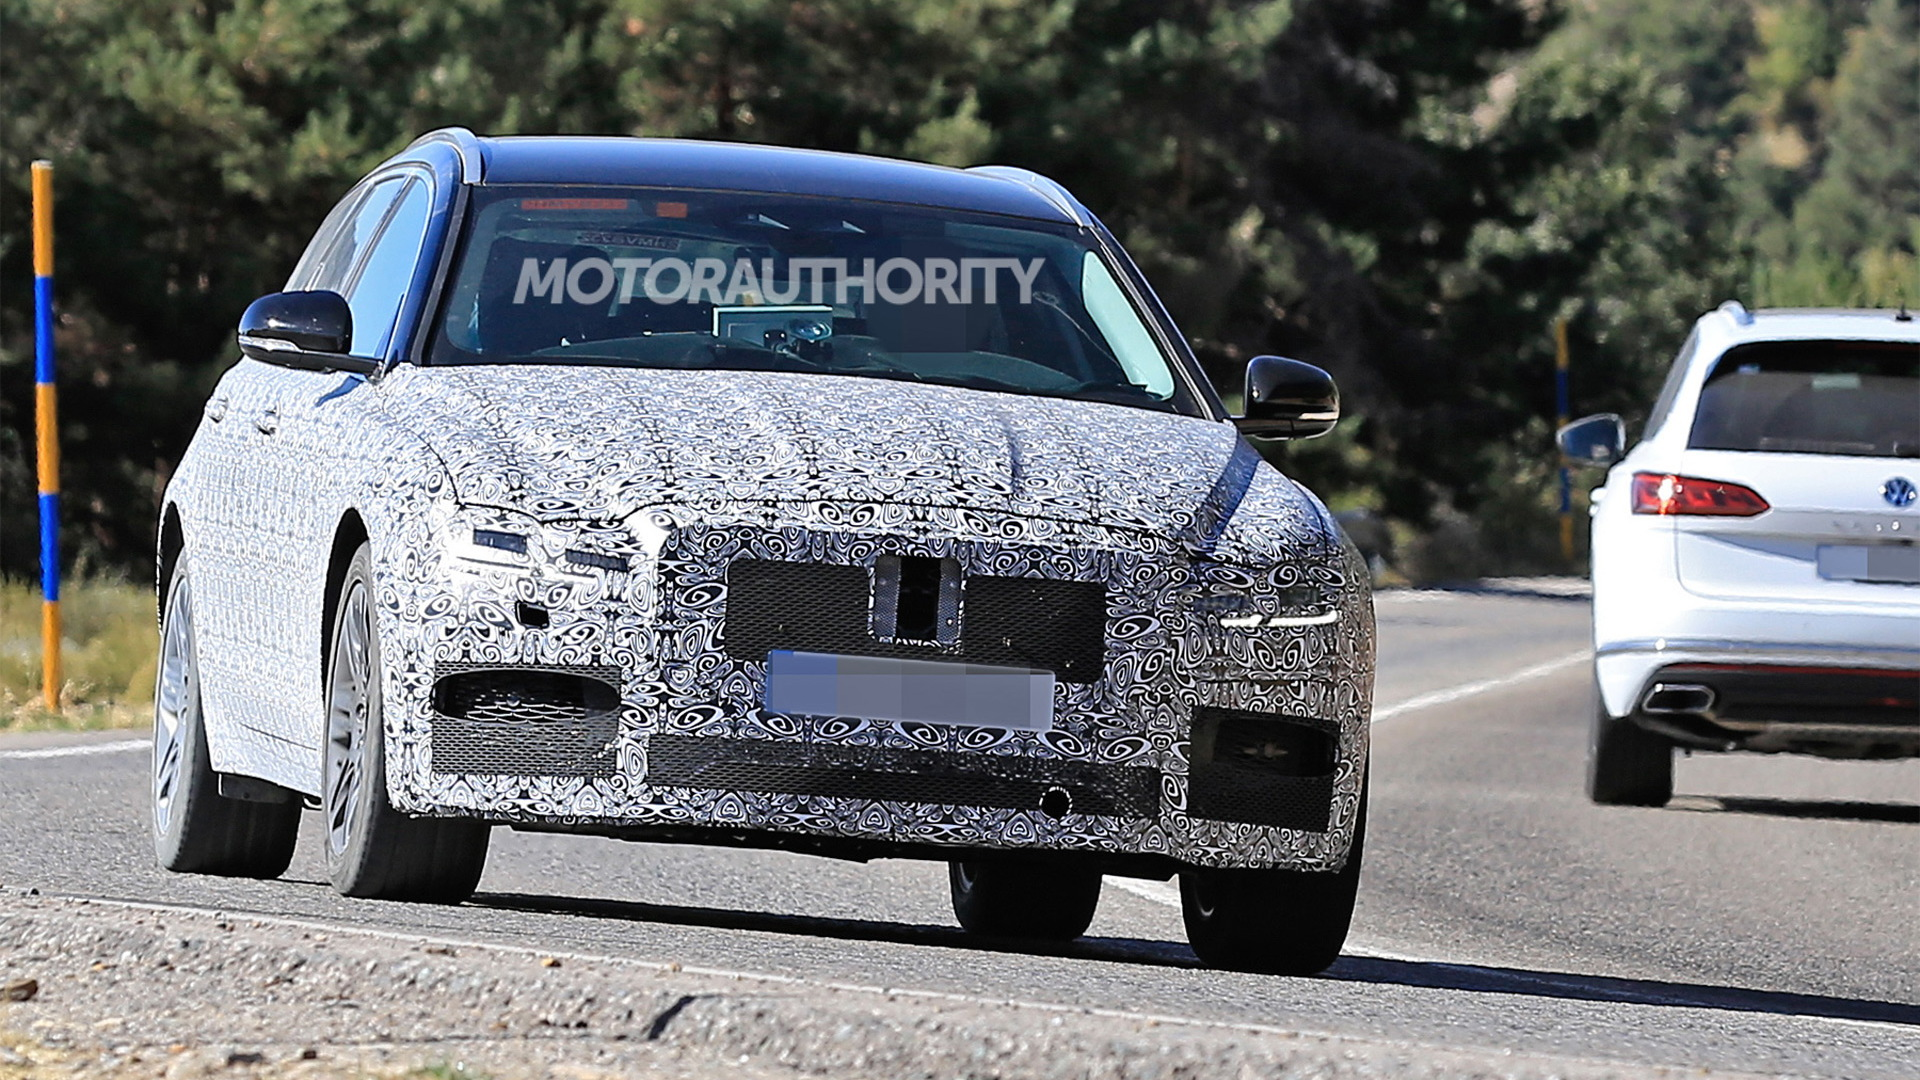 2021 Jaguar XF Sportbrake facelift spy shots - Photo credit: S. Baldauf/SB-Medien